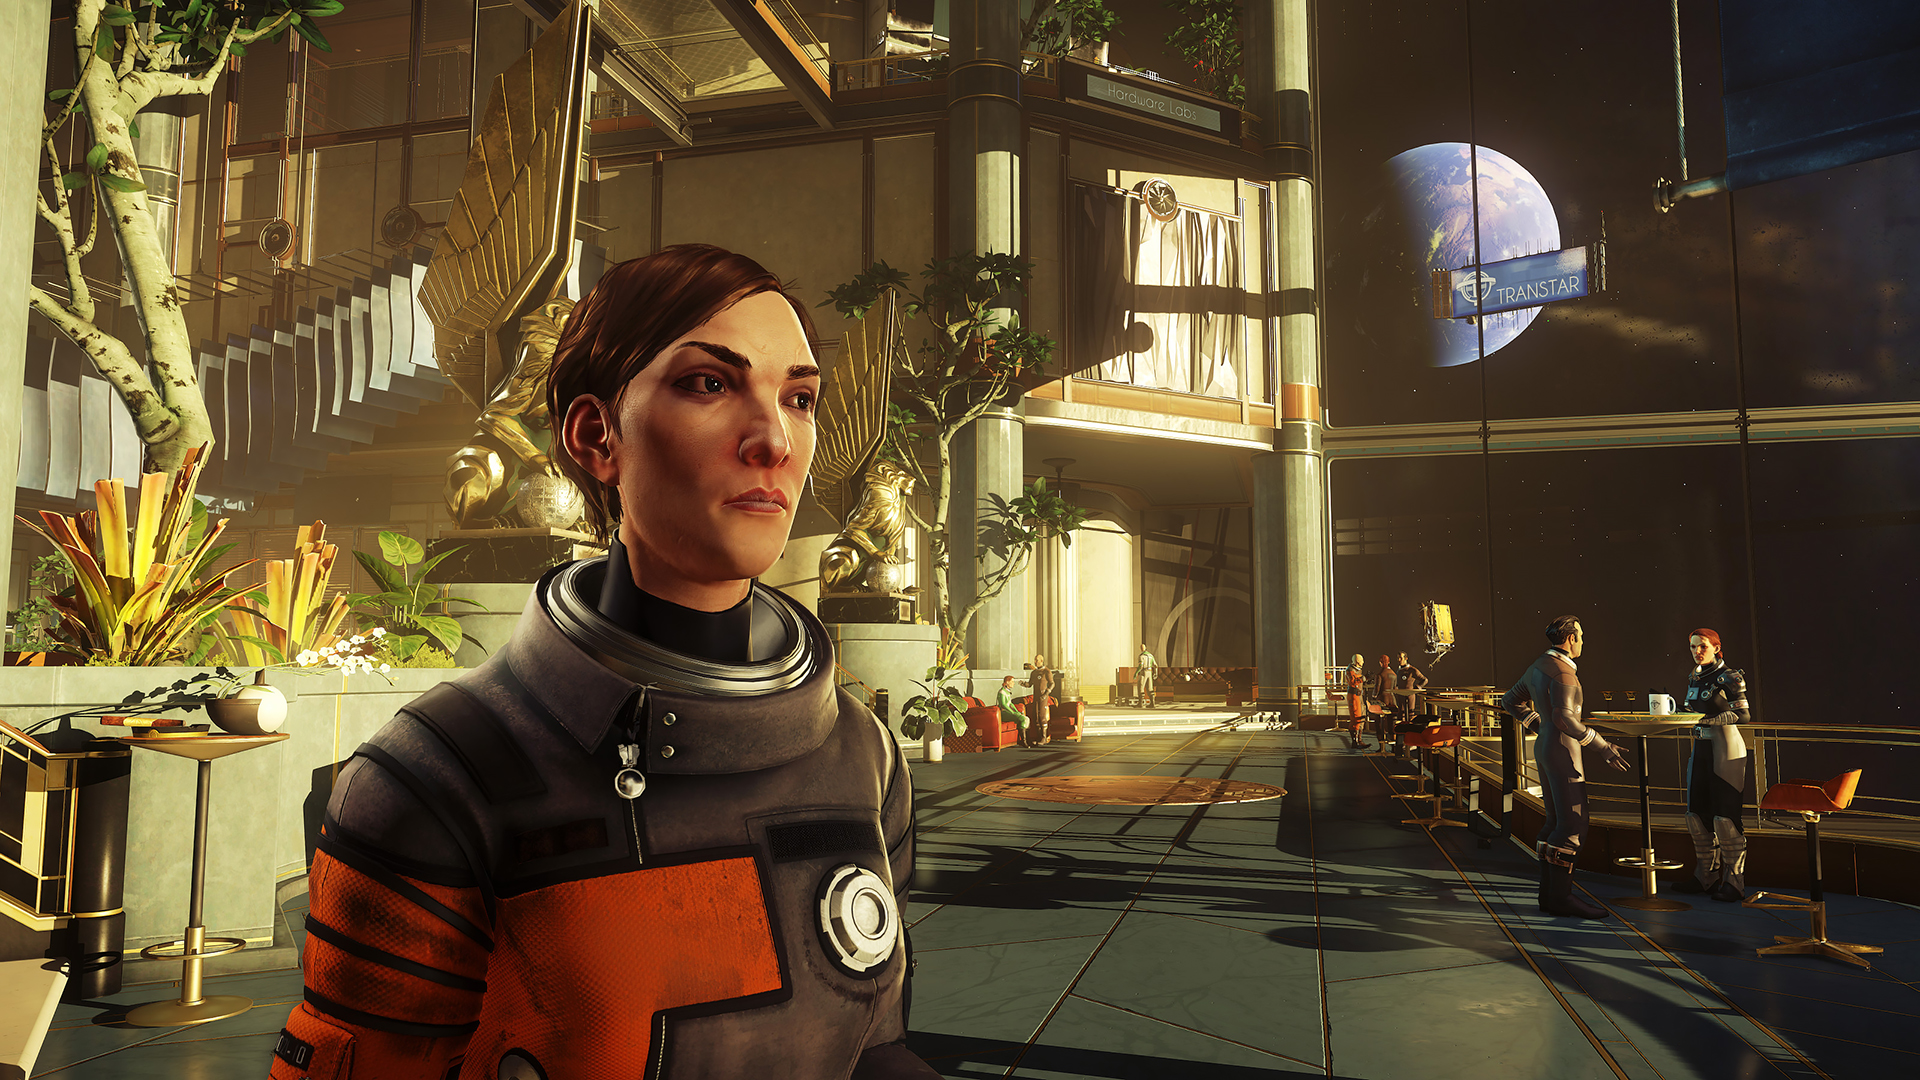 See the gameplay reveal of Prey, powered by CRYENGINE